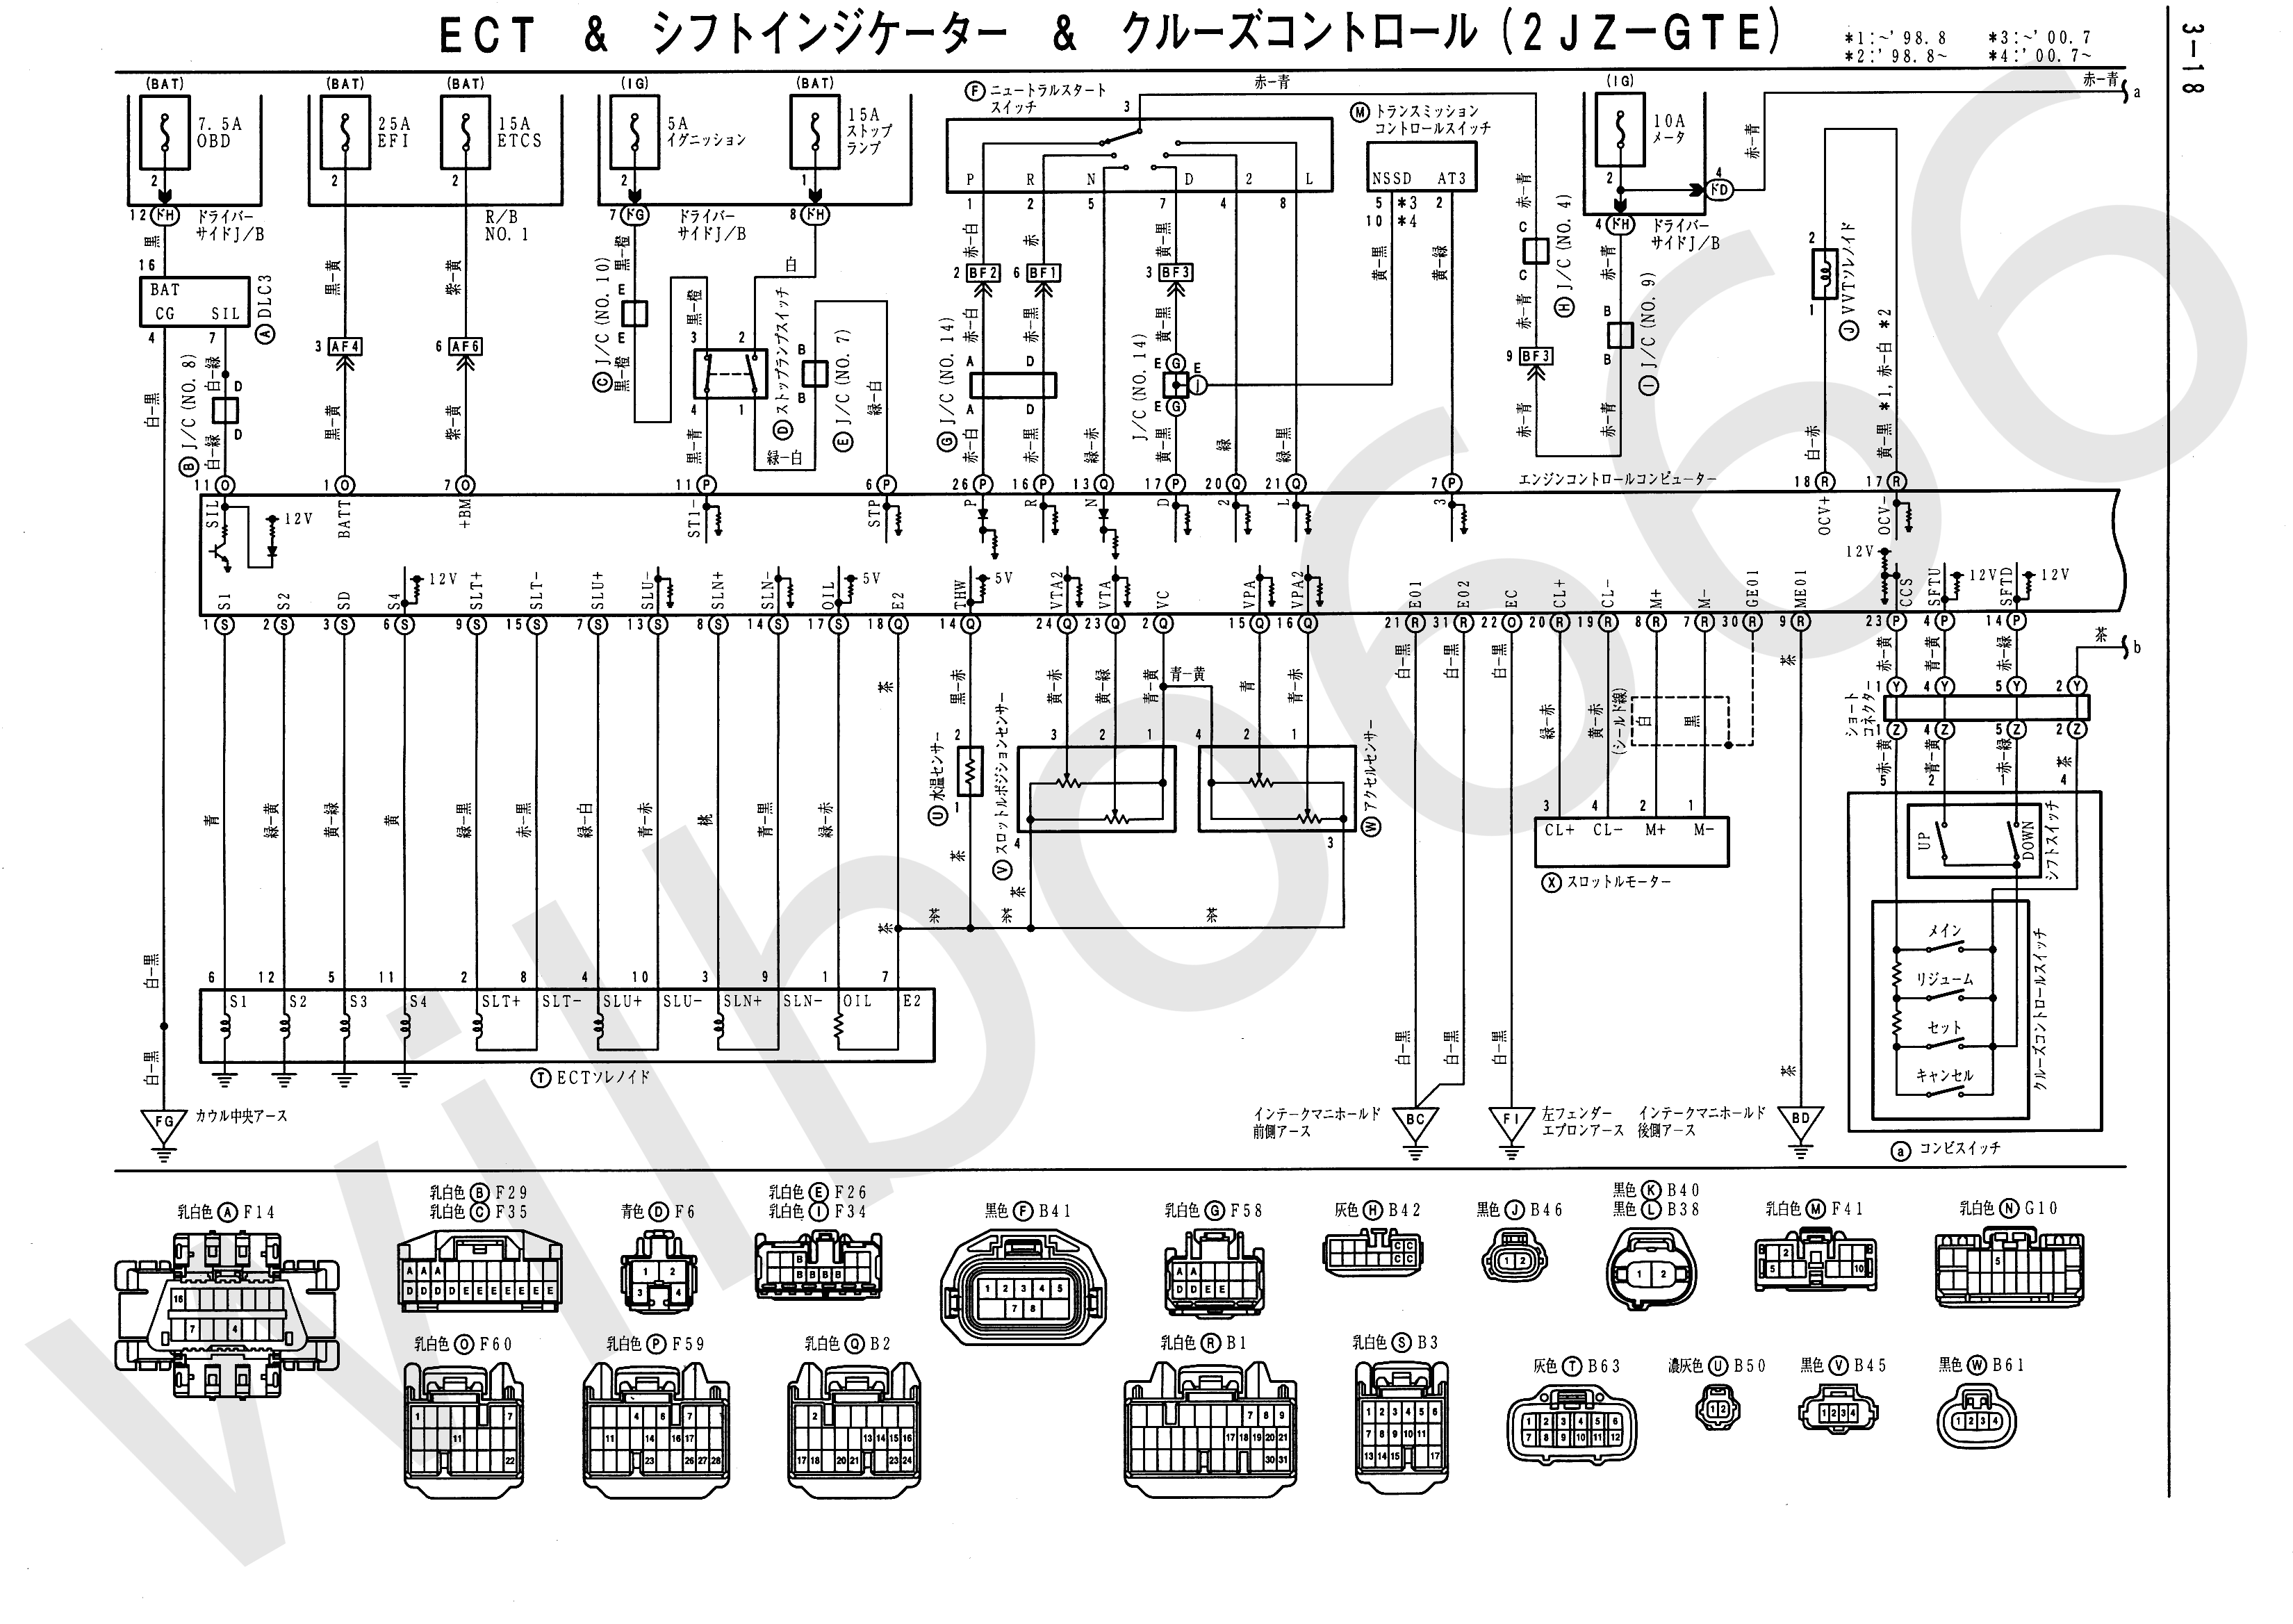 2jz Wiring Diagram Online Schematics Engine Diagrams Wilbo666 Gte Vvti Jzs161 Aristo Ge Pdf